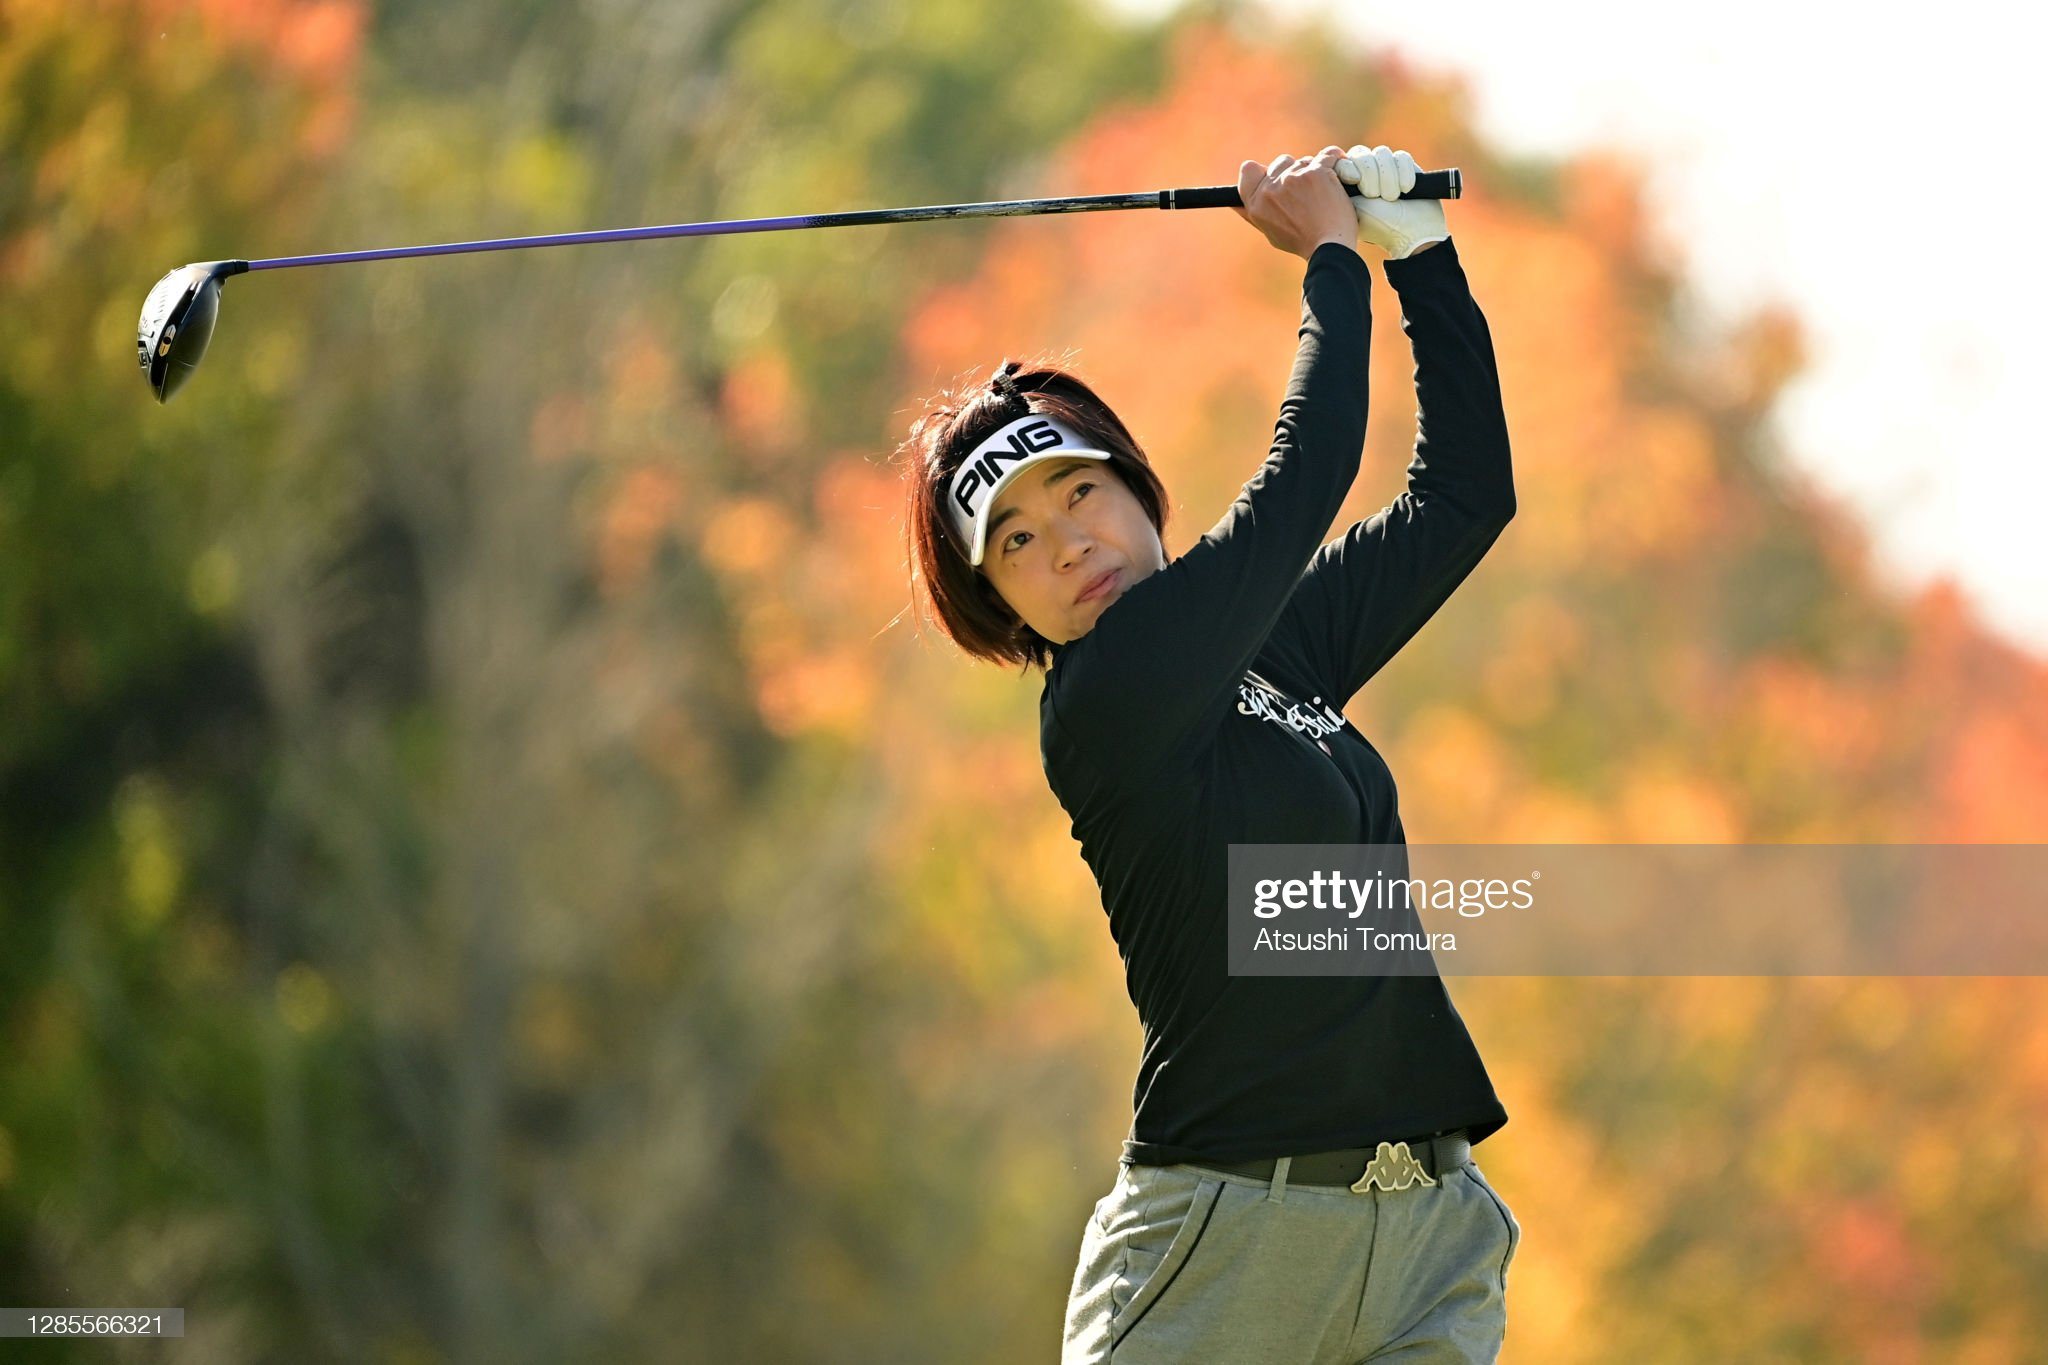 https://media.gettyimages.com/photos/shiho-oyama-of-japan-hits-her-tee-shot-on-the-9th-hole-during-the-picture-id1285566321?s=2048x2048